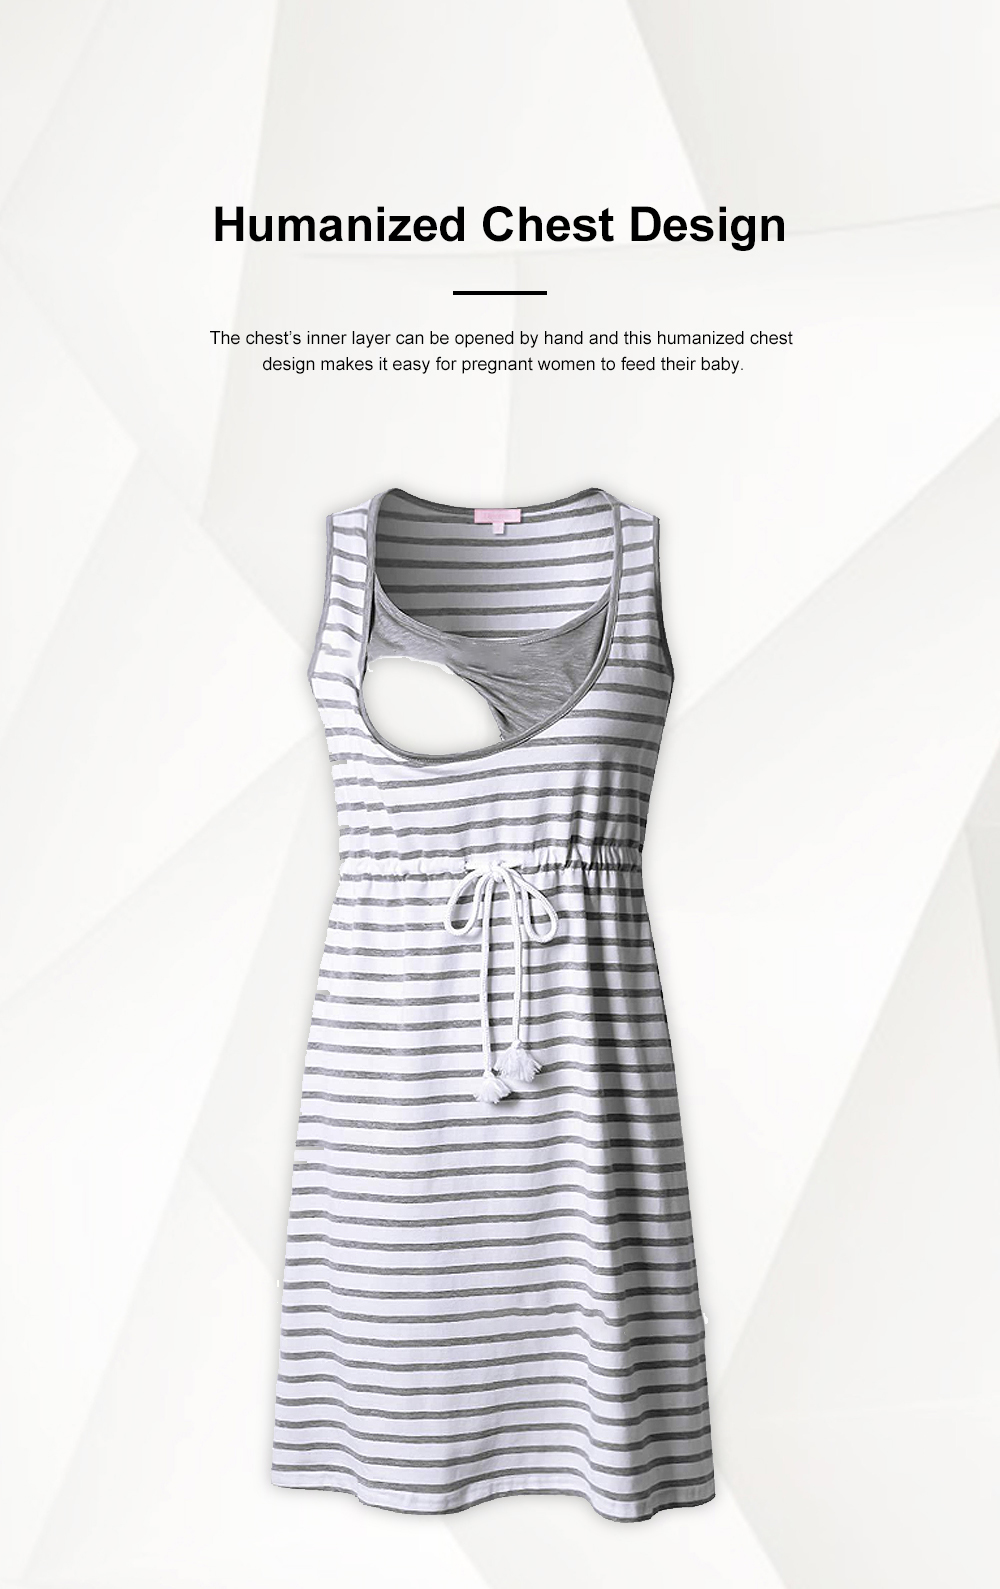 Contrast Colored Striped Maternity Dress, Pregnant Woman Cloth Nursing Dress with Drawstring Waist 2